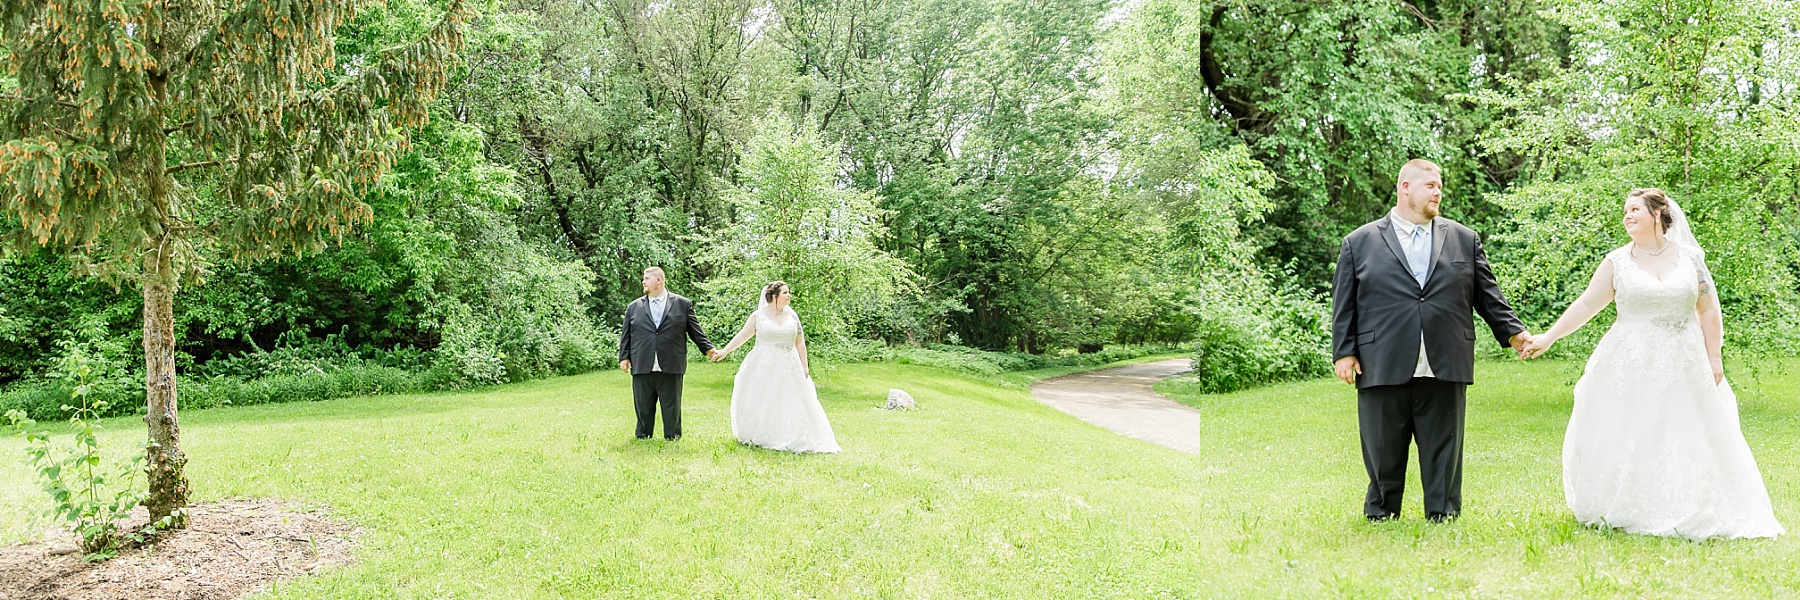 lafayette indiana wedding photographer photography thomas duncan hall_0166.jpg